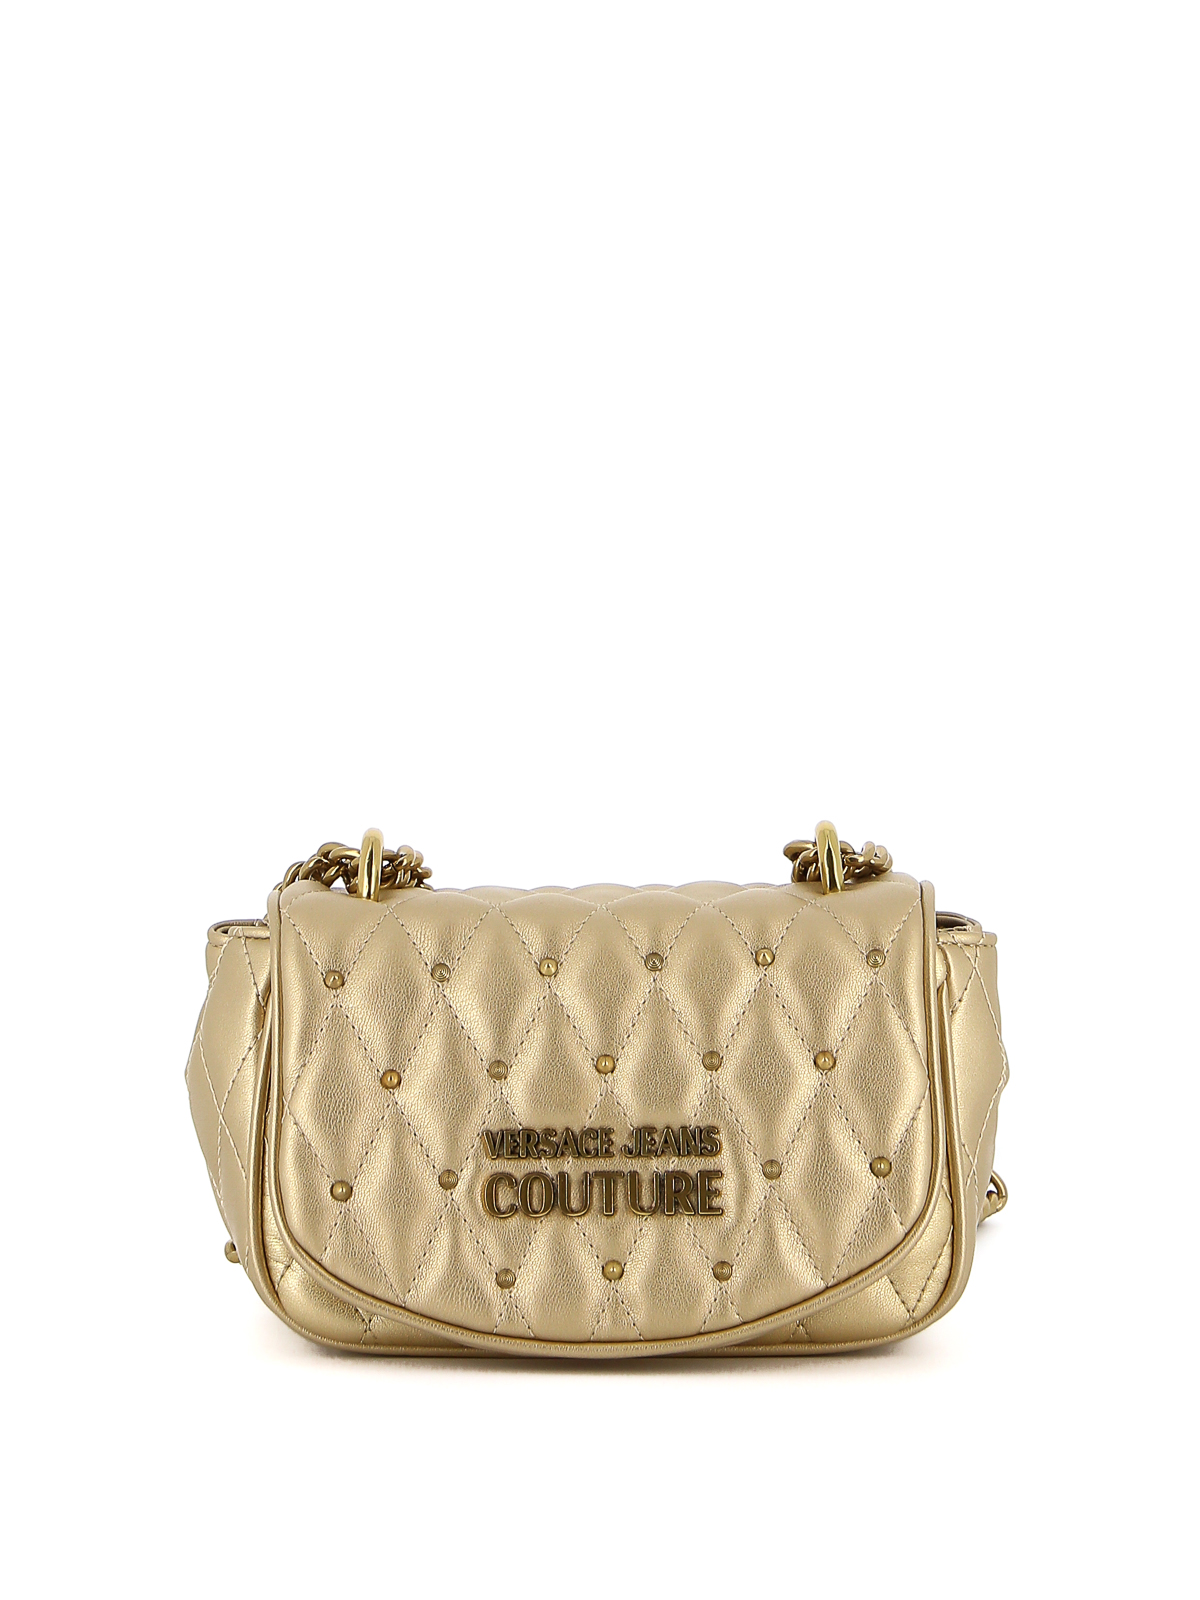 Versace Jeans Couture Leathers STUDDED CROSSBODY BAG